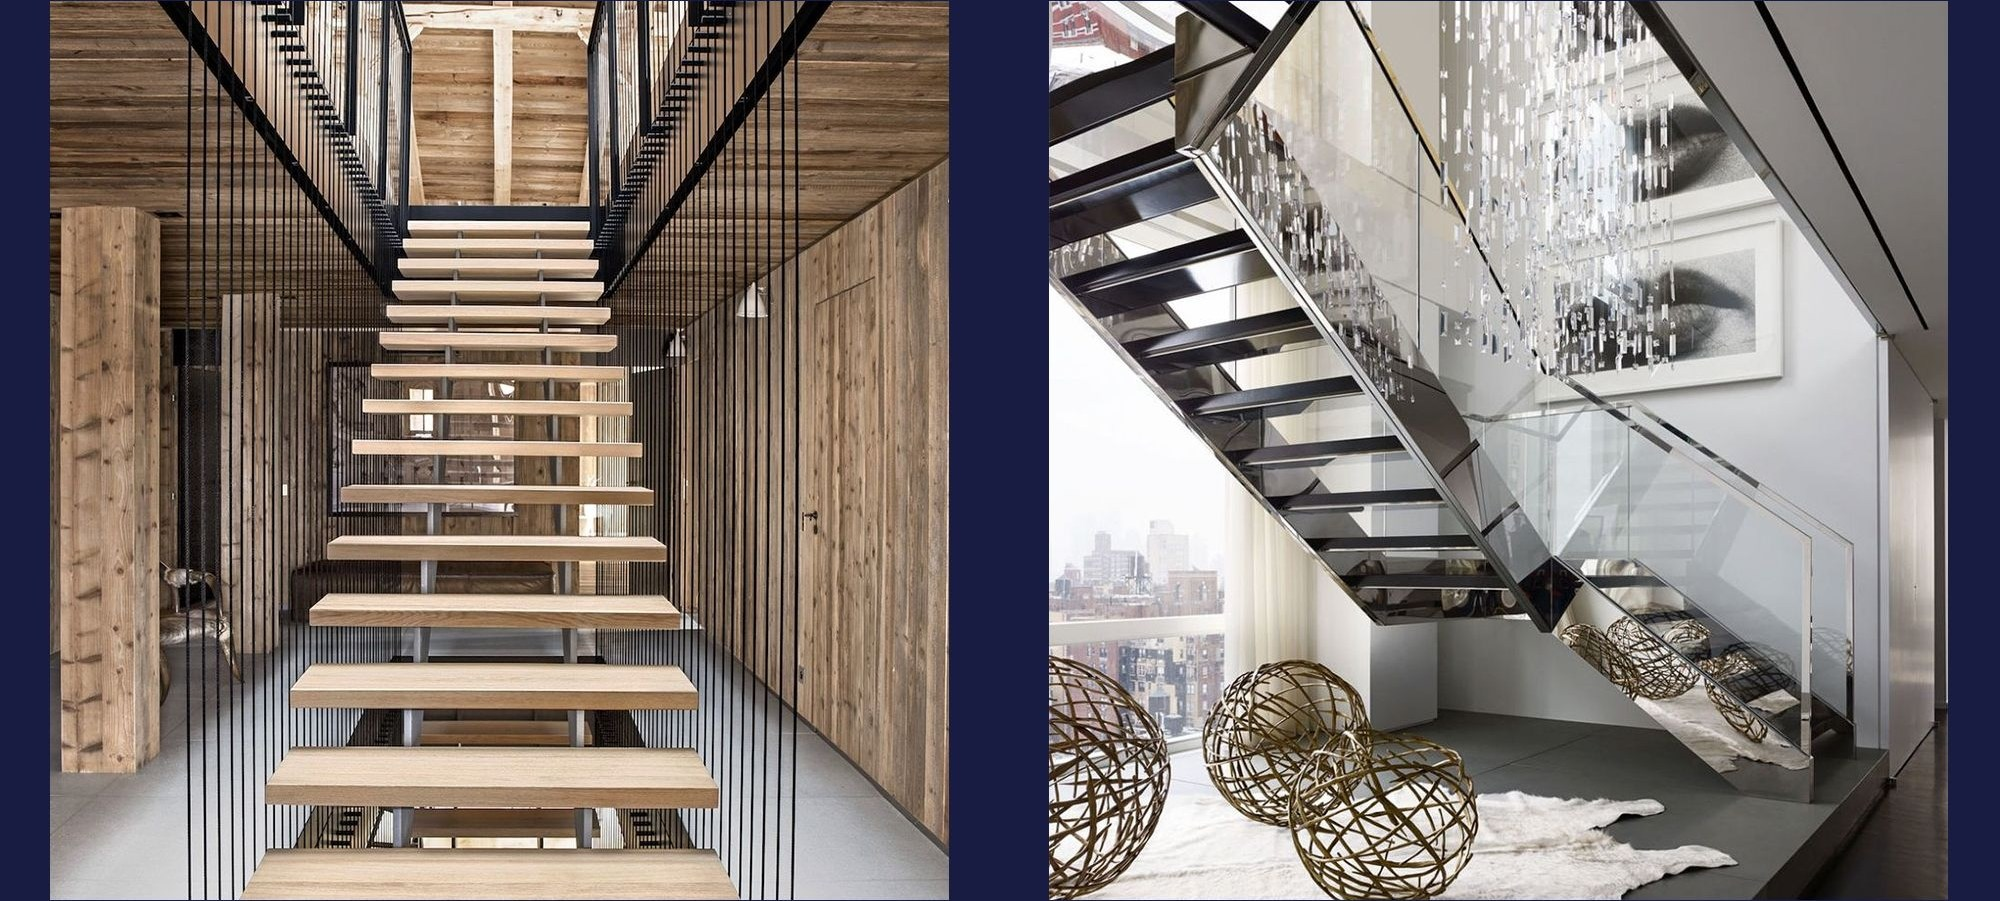 20 Striking Open Stairs Modern Open Staircase Design Ideas | Duplex Staircase Railing Designs | Indoor | Wooden | Grill | Two Story House Stair | Floor To Ceiling